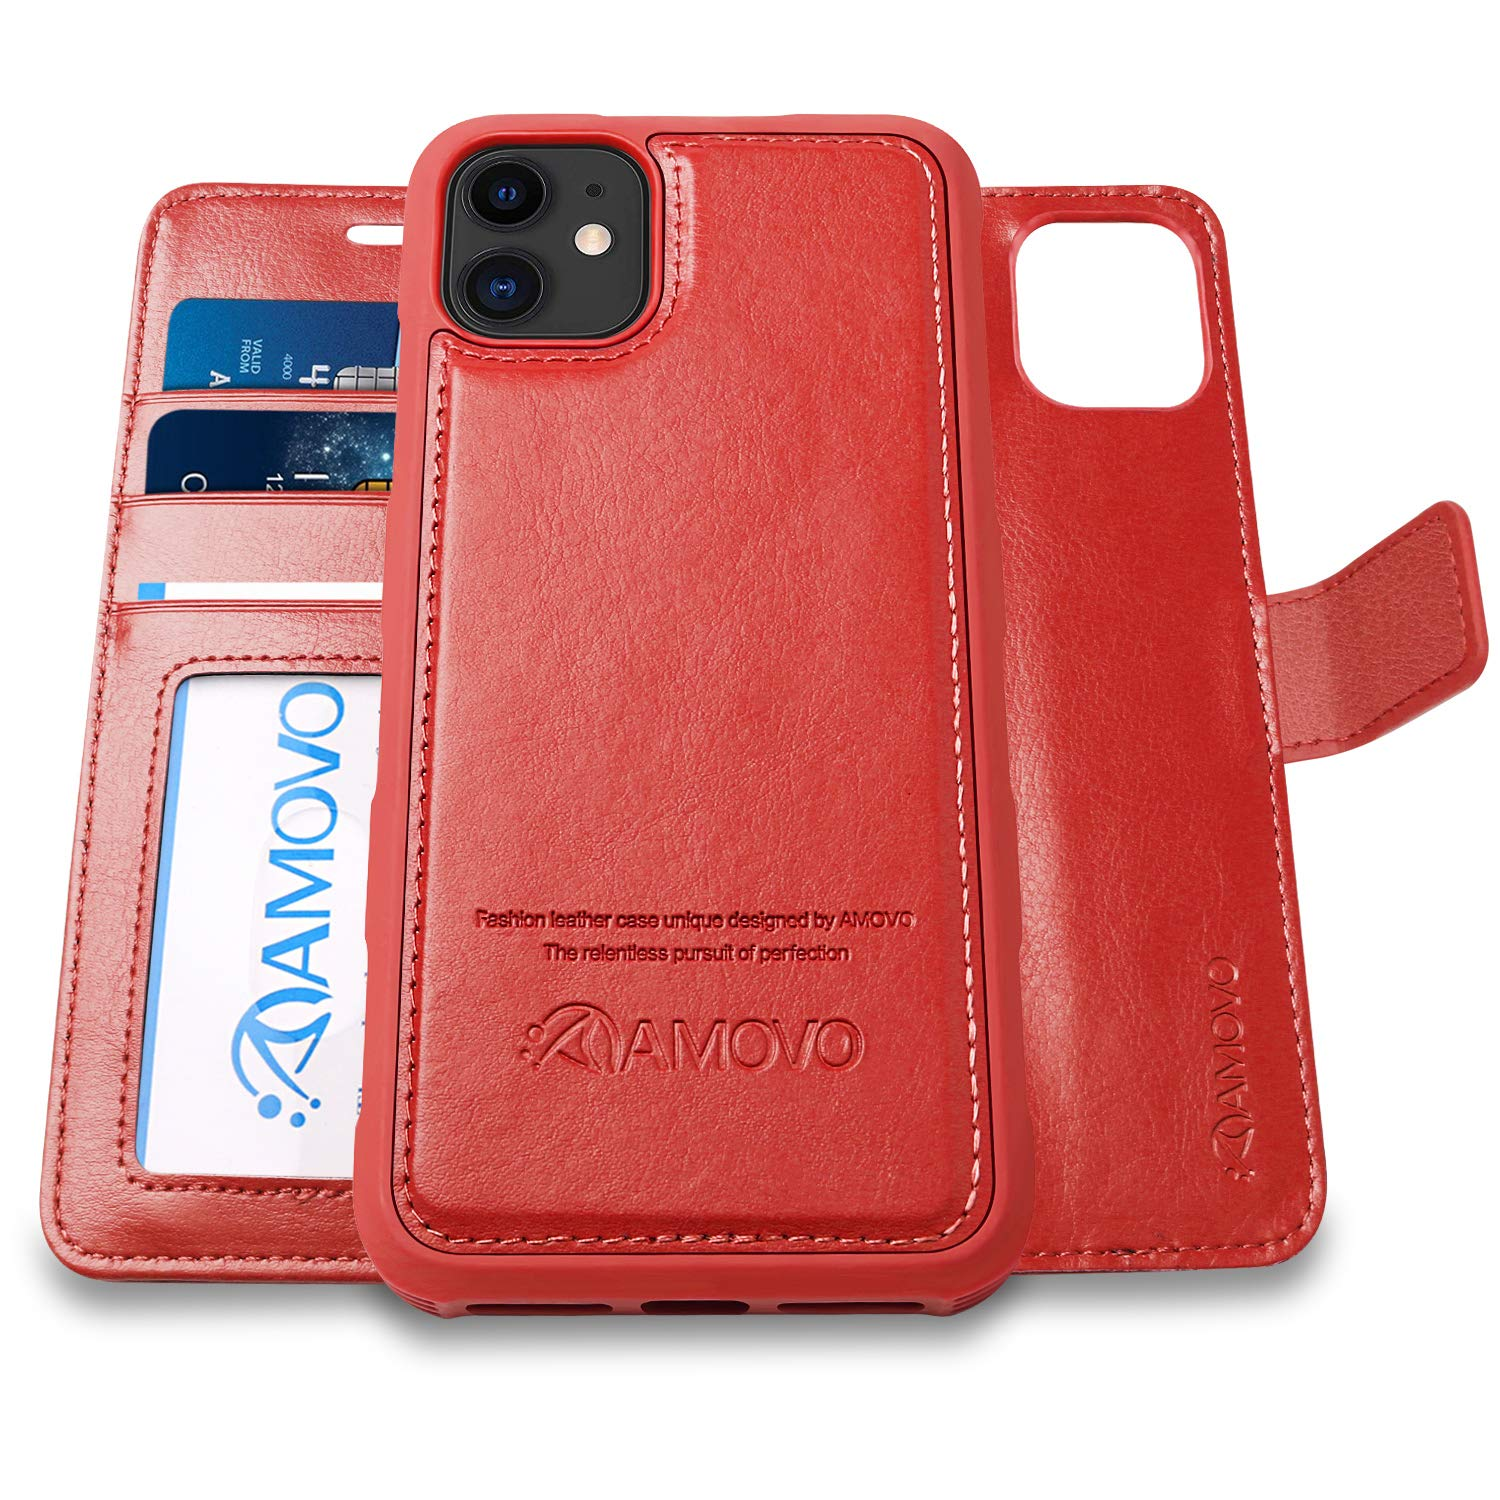 AMOVO Case for iPhone 11 (6.1'') [2 in 1] iPhone 11 Wallet Case Detachable [Vegan Leather] [Hand Strap] [Kickstand] iPhone 11 Flip Folio Case with Gift Box Package (iPhone 11 (6.1''), Red)